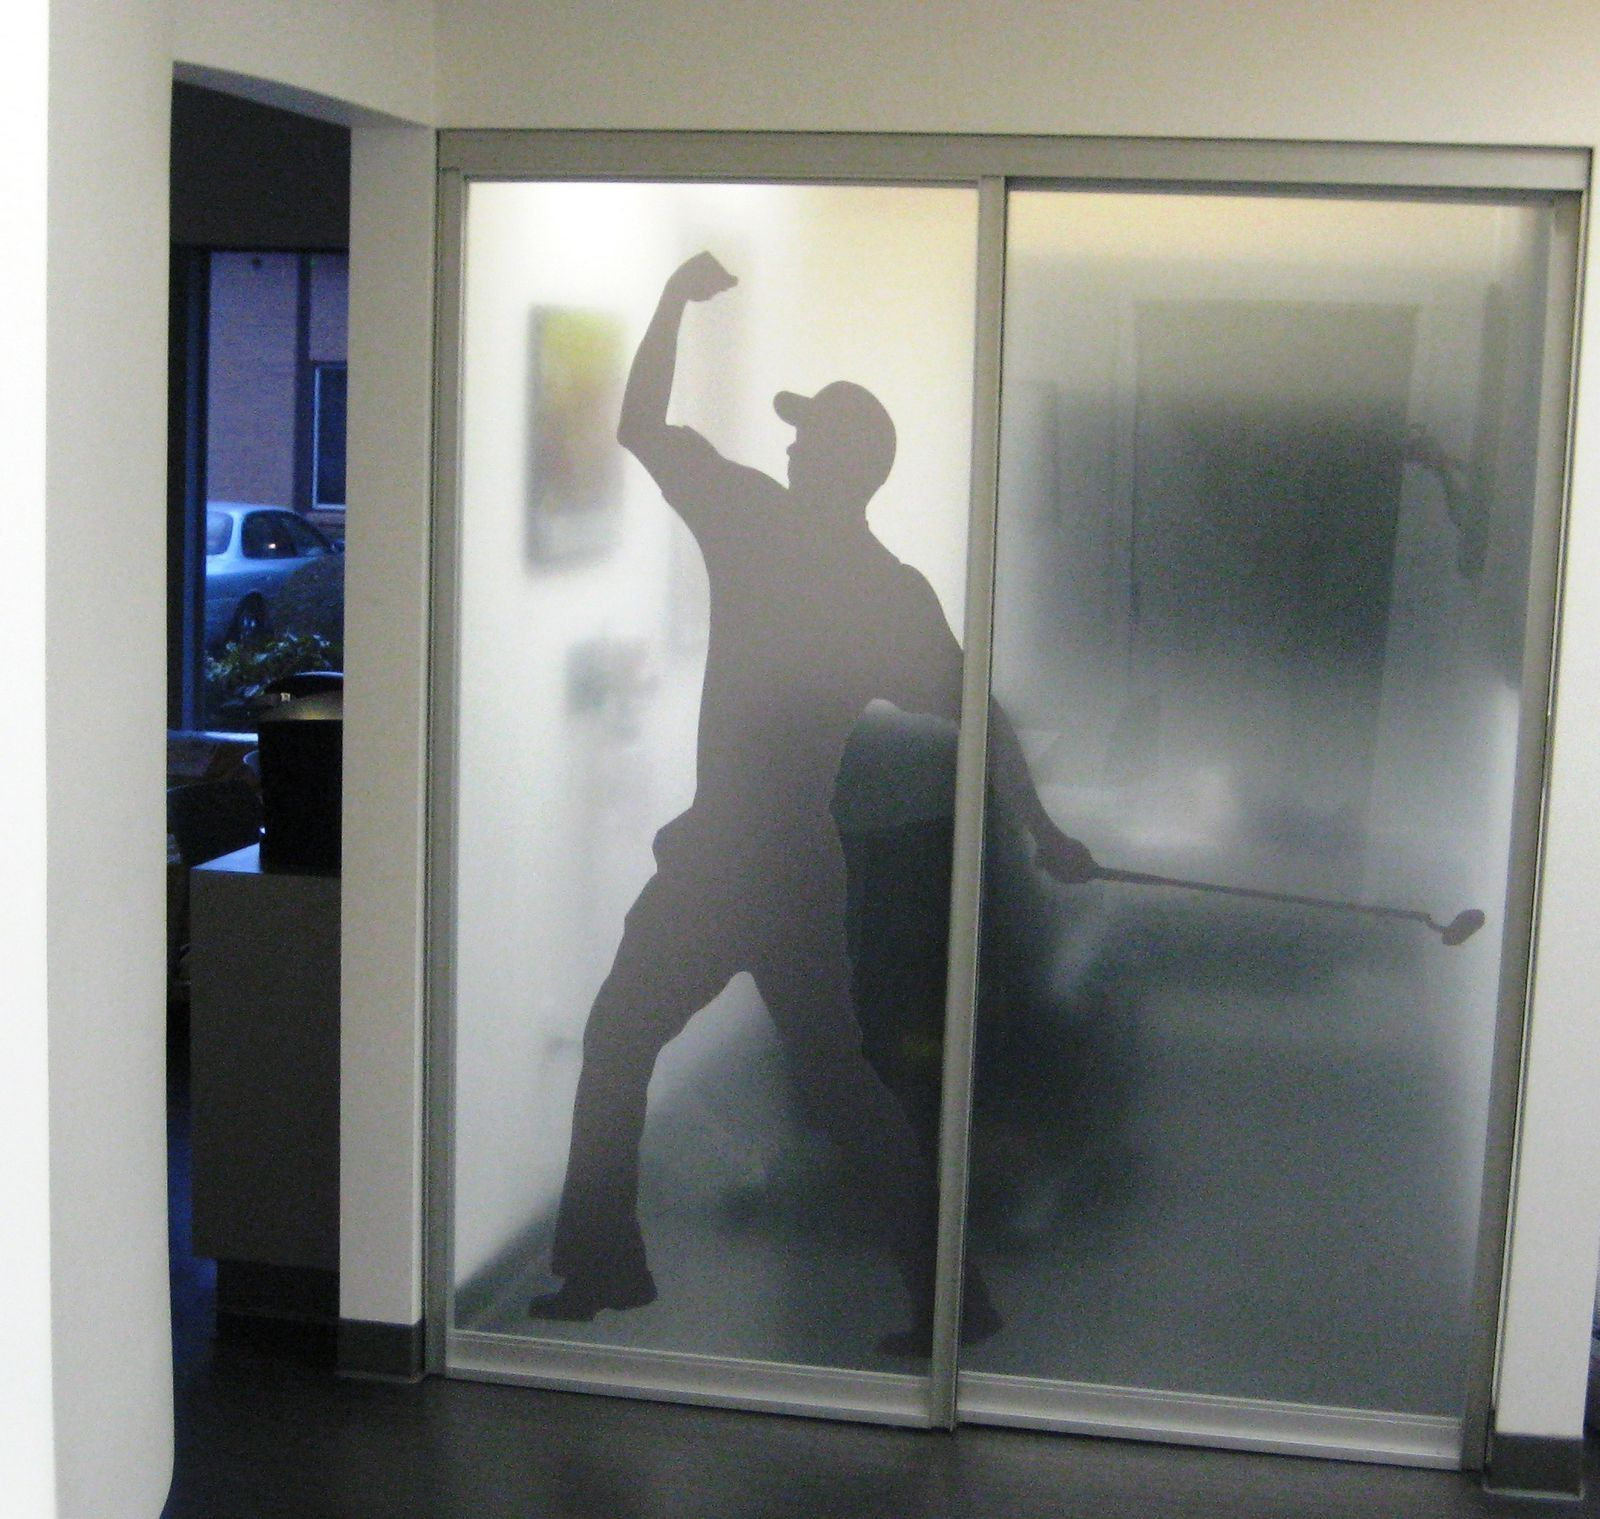 Sliding Glass Door Frosted Film : translucent door film - pezcame.com